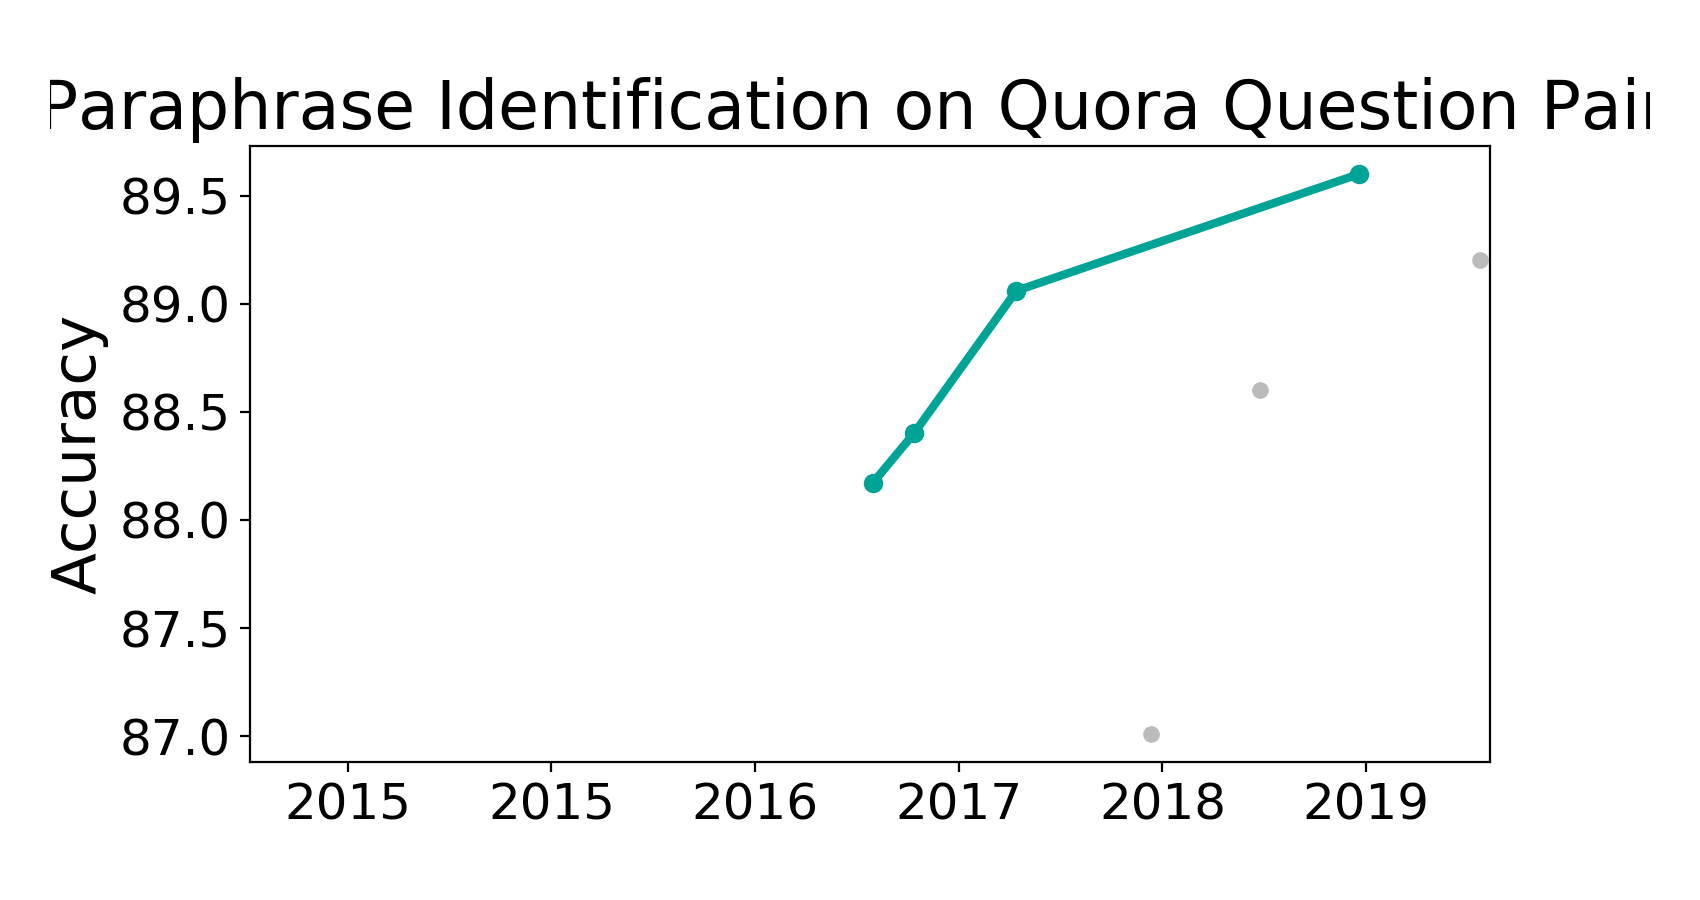 State-of-the-art table for Paraphrase Identification on Quora